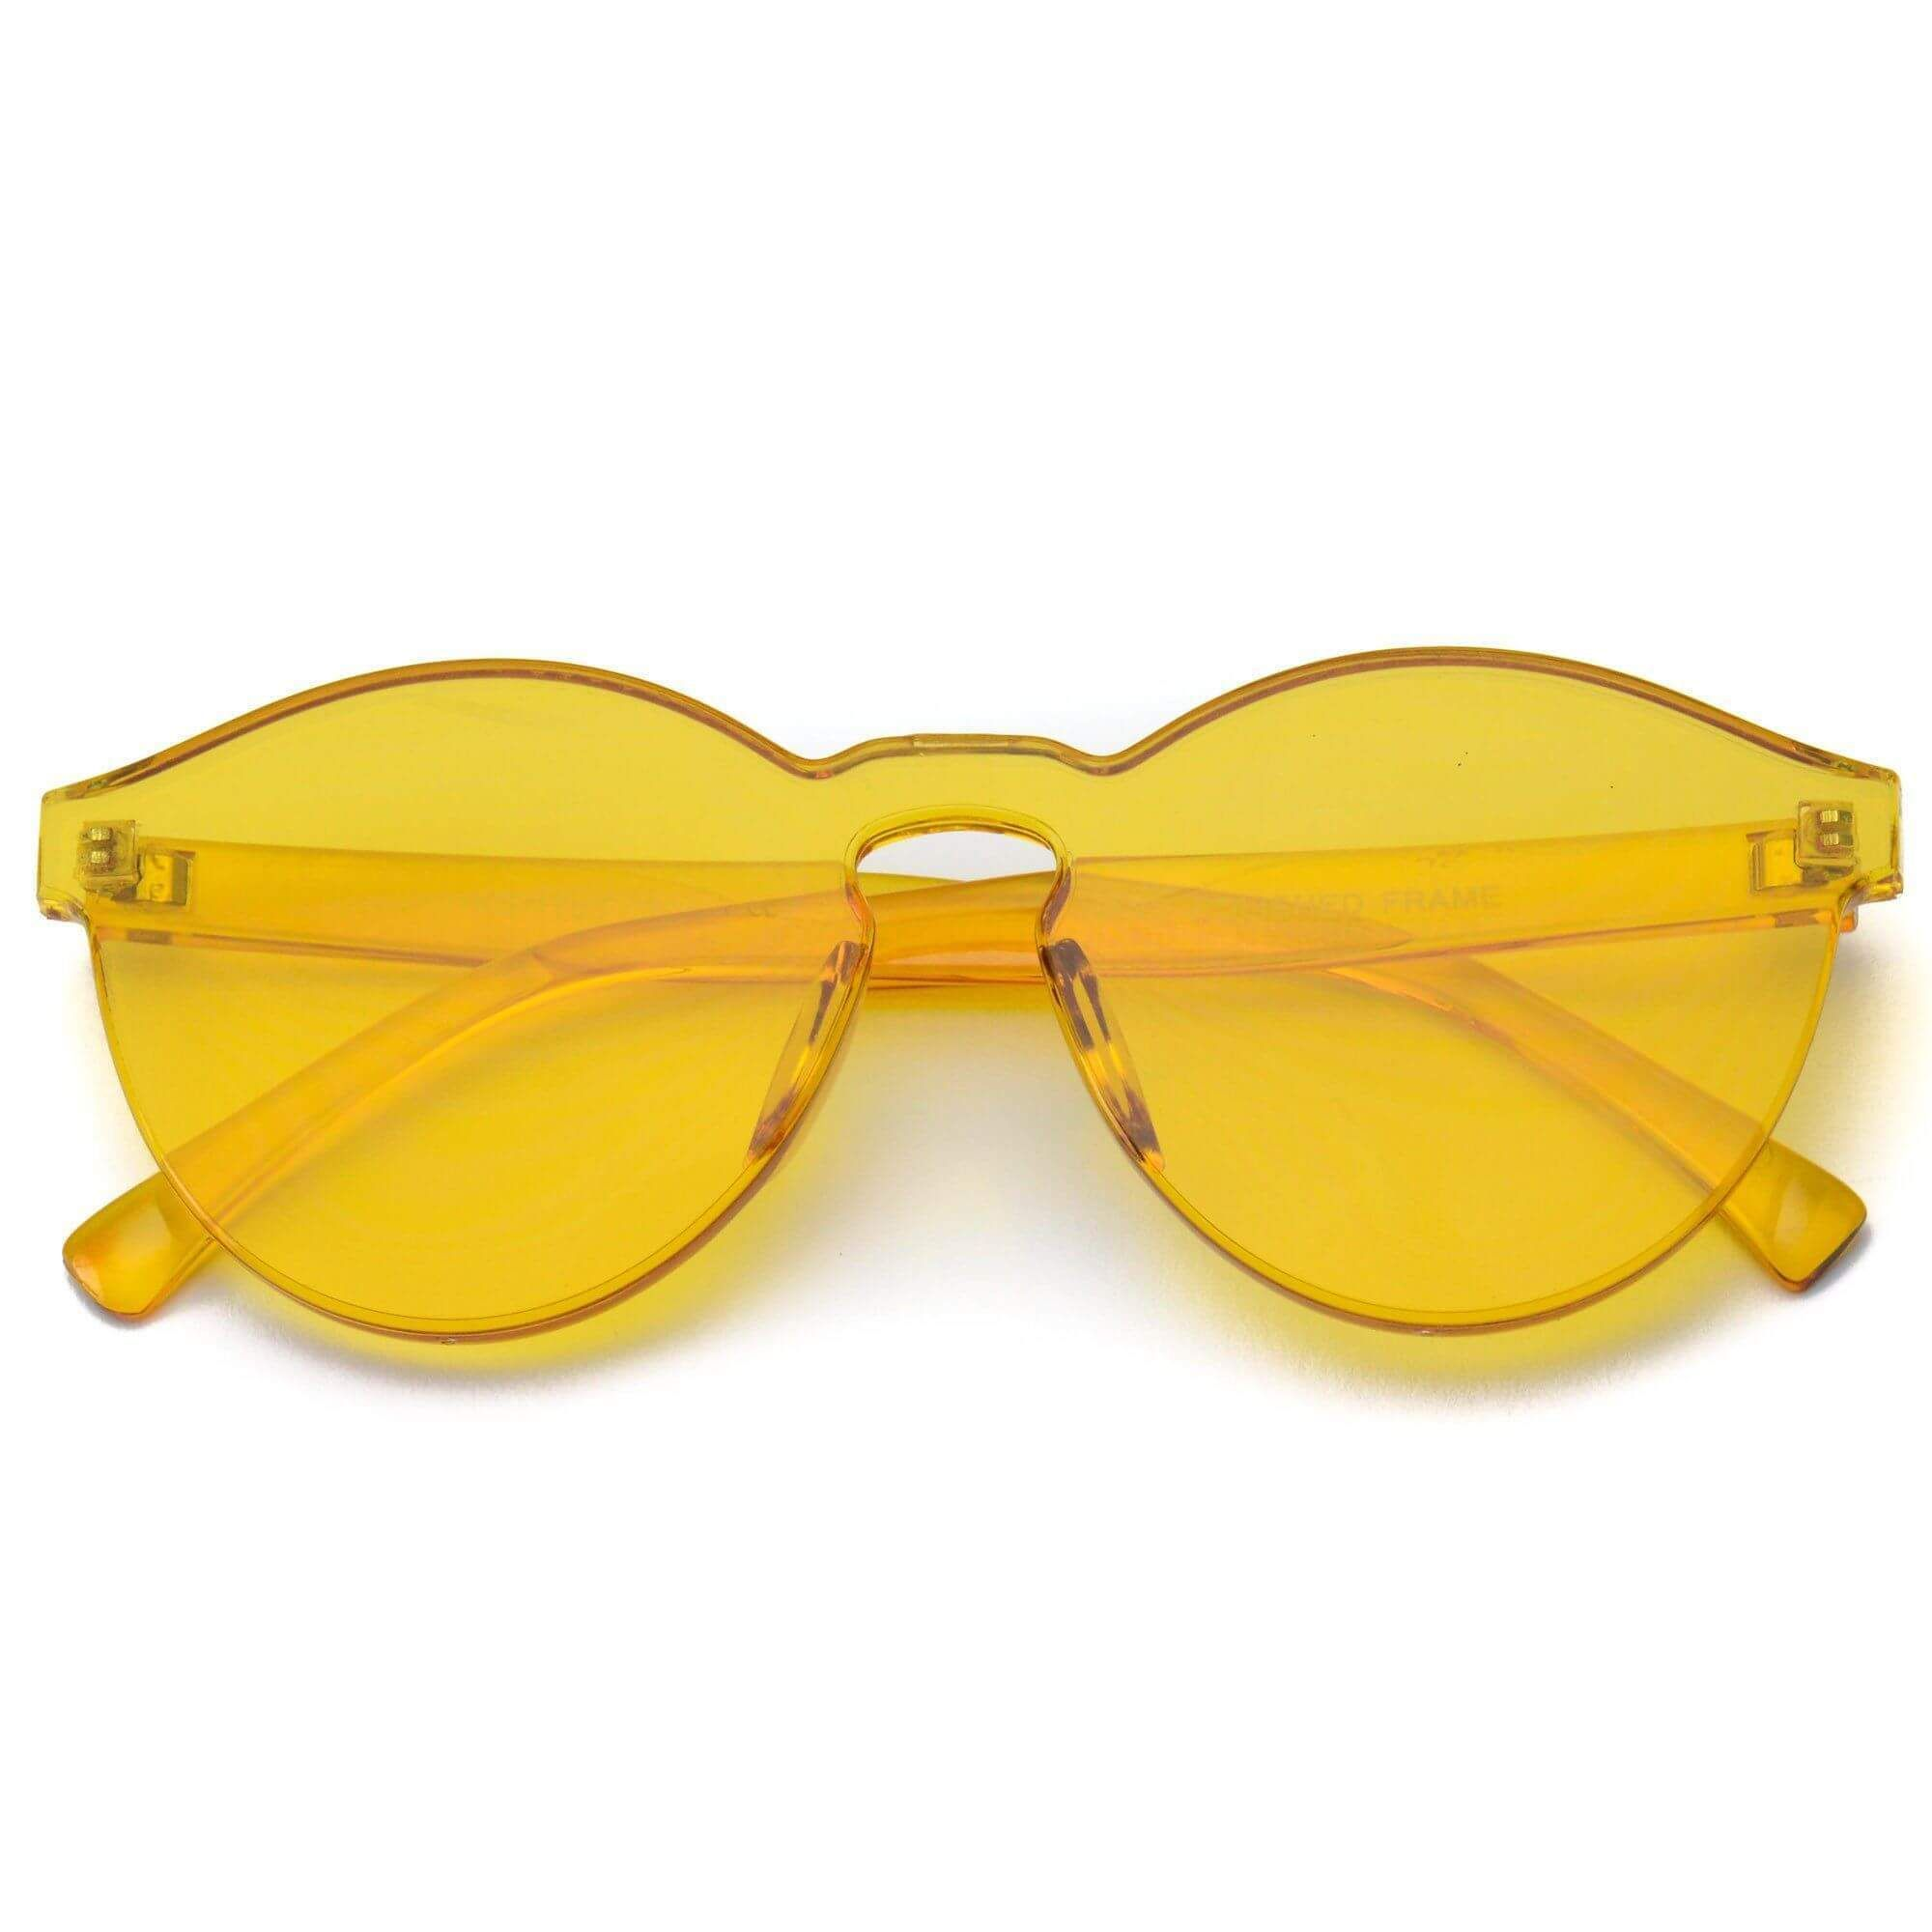 67d96a6ced8 Bailey Colorful Transparent Mono Round Summer Sunglasses